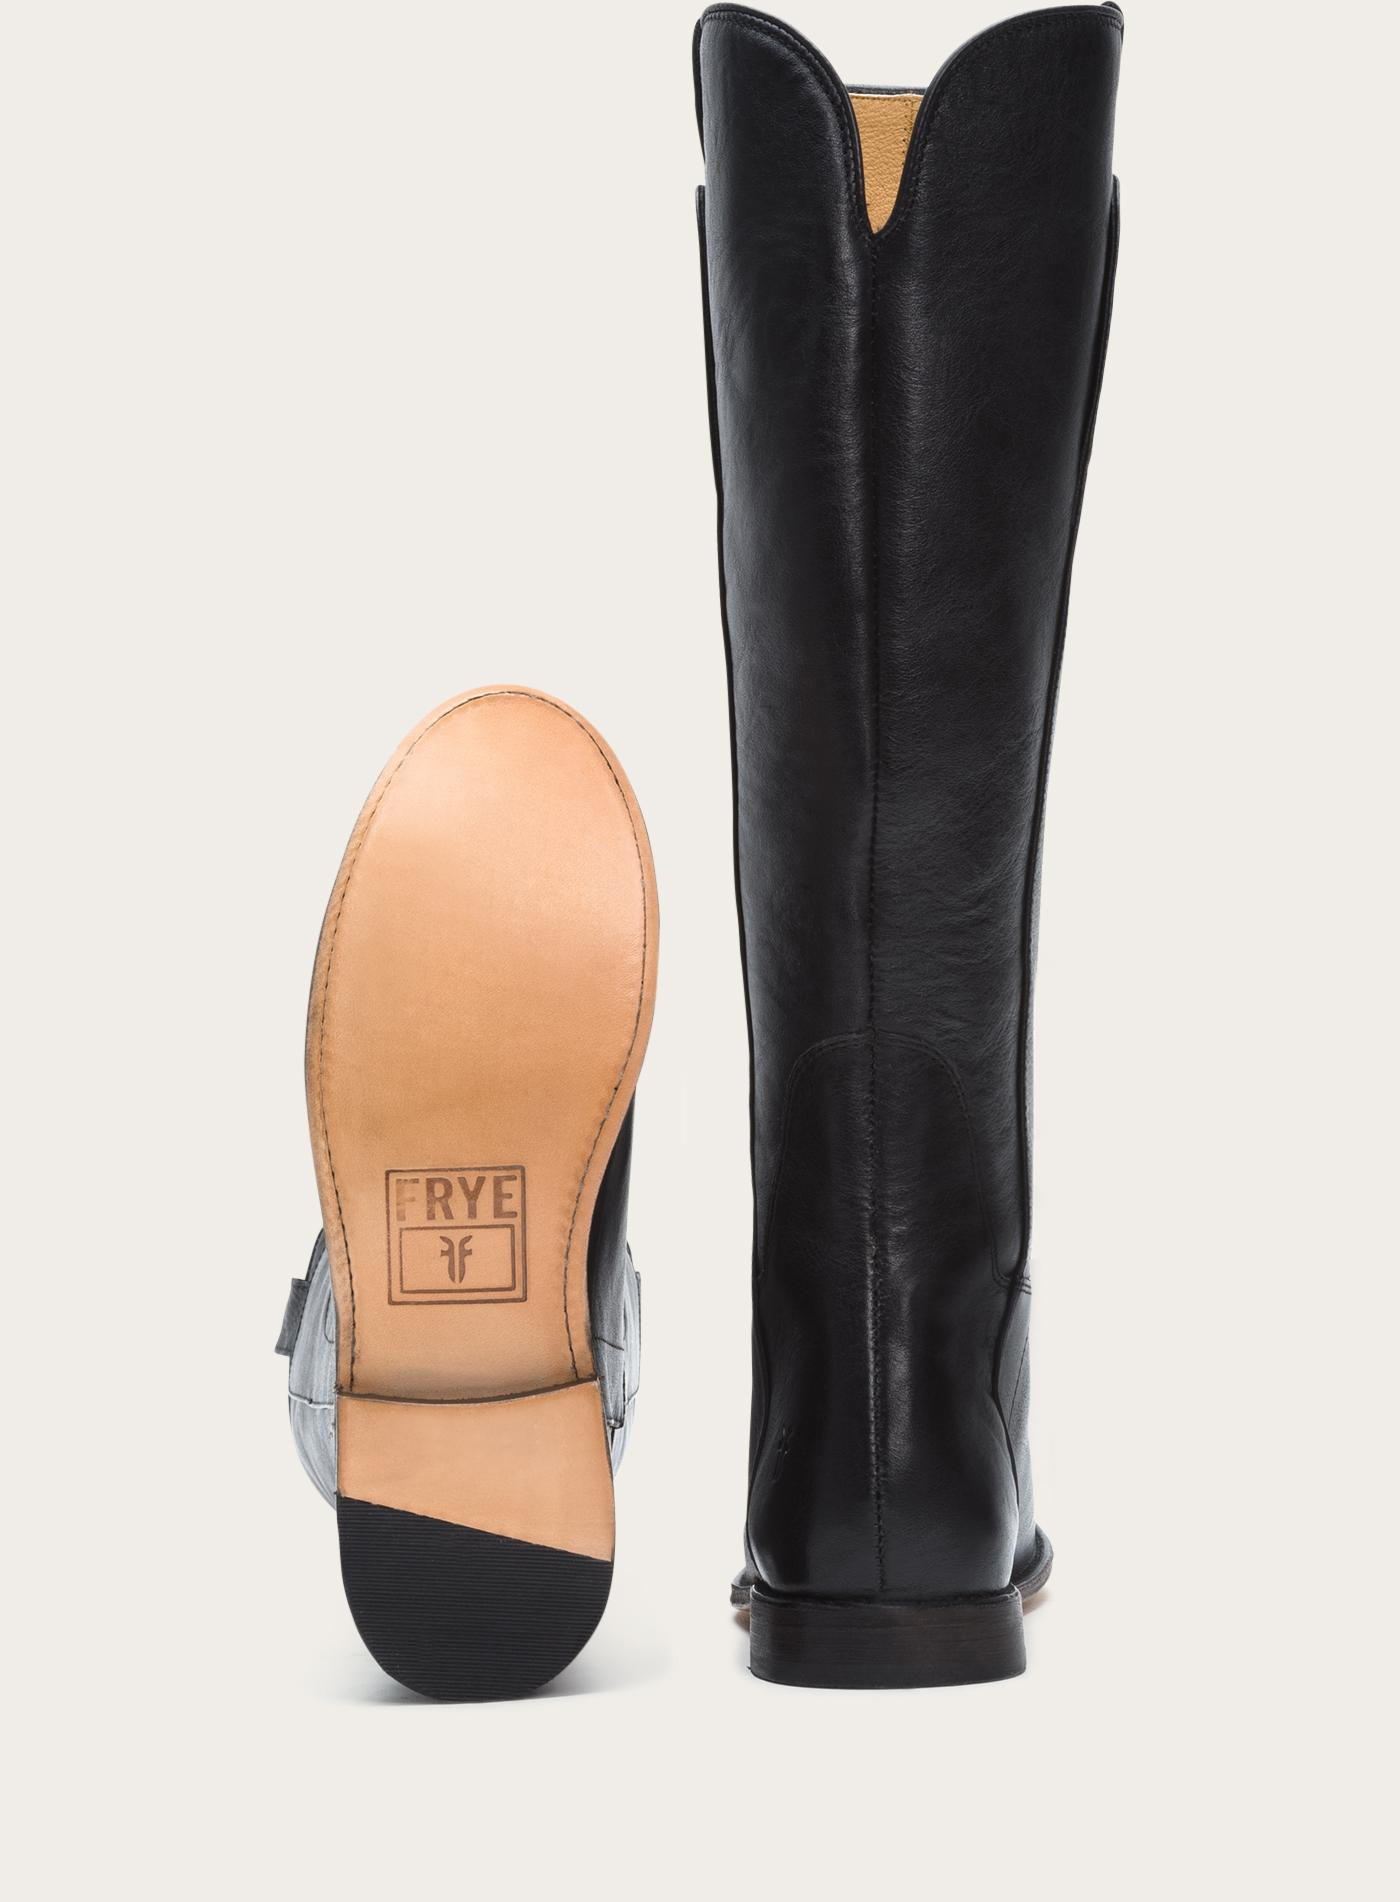 Frye Paige Tall Riding in Black